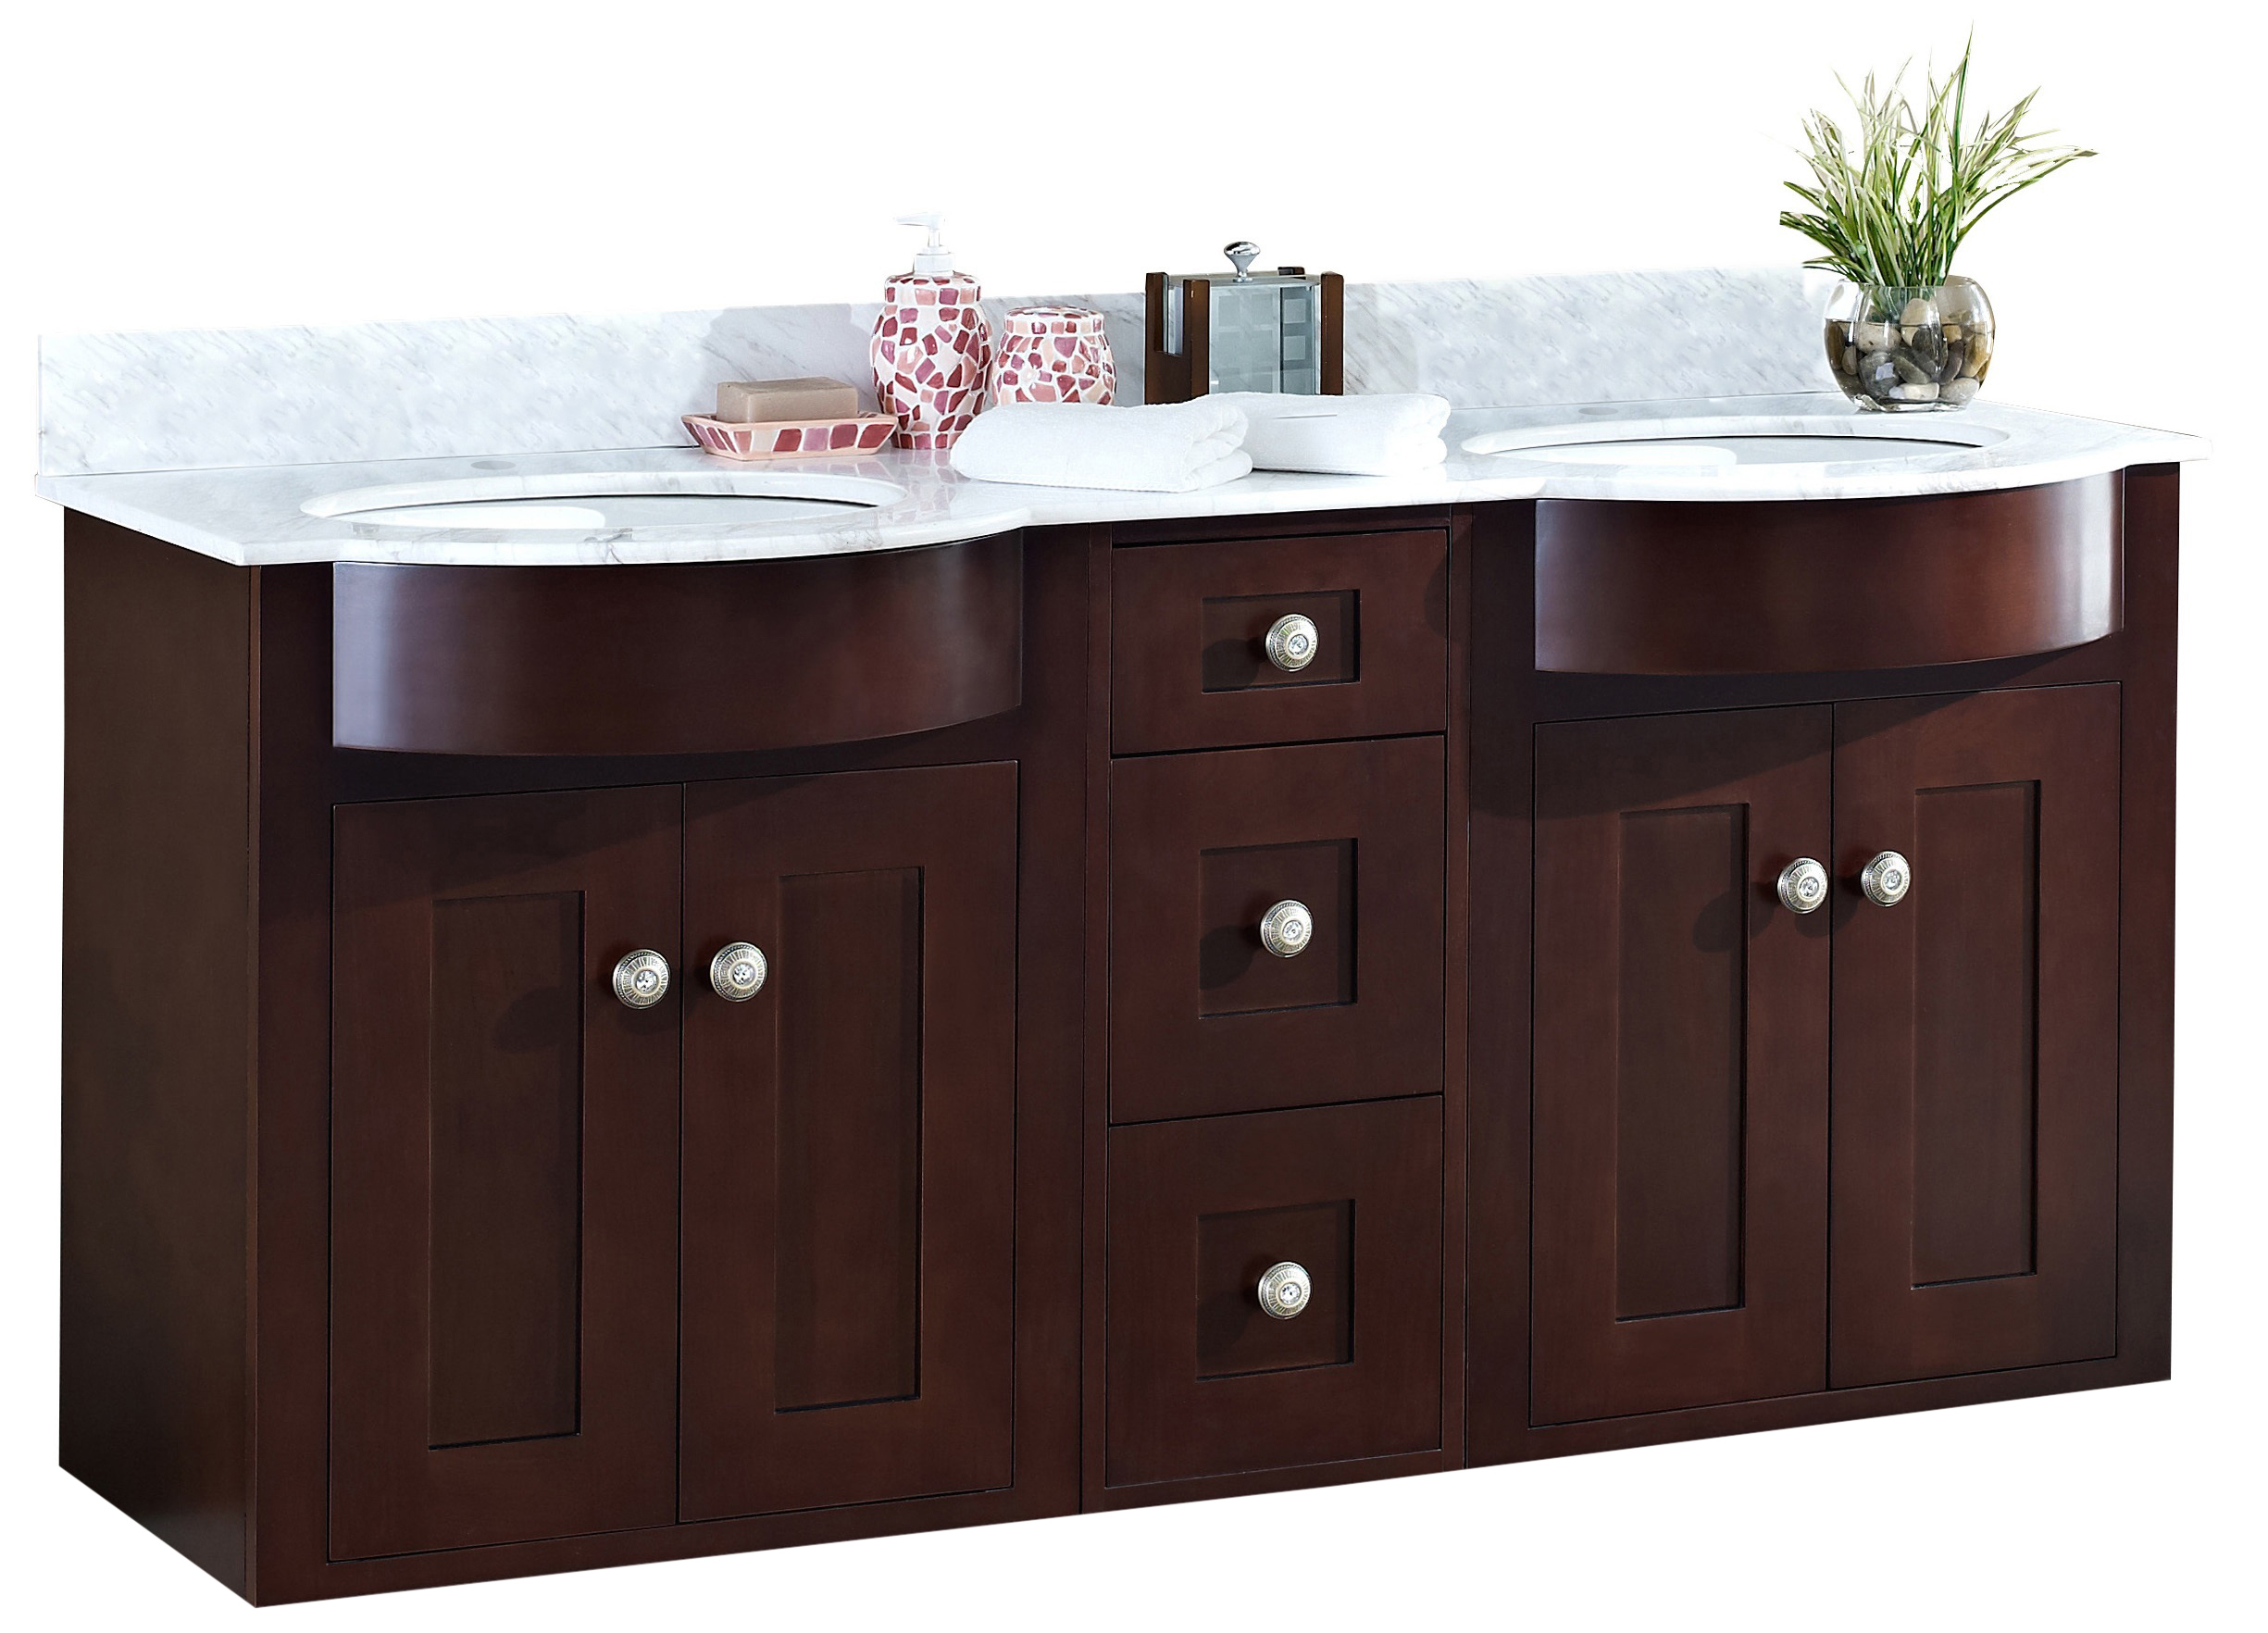 double camden dsc furniture product vanity mission sink hills